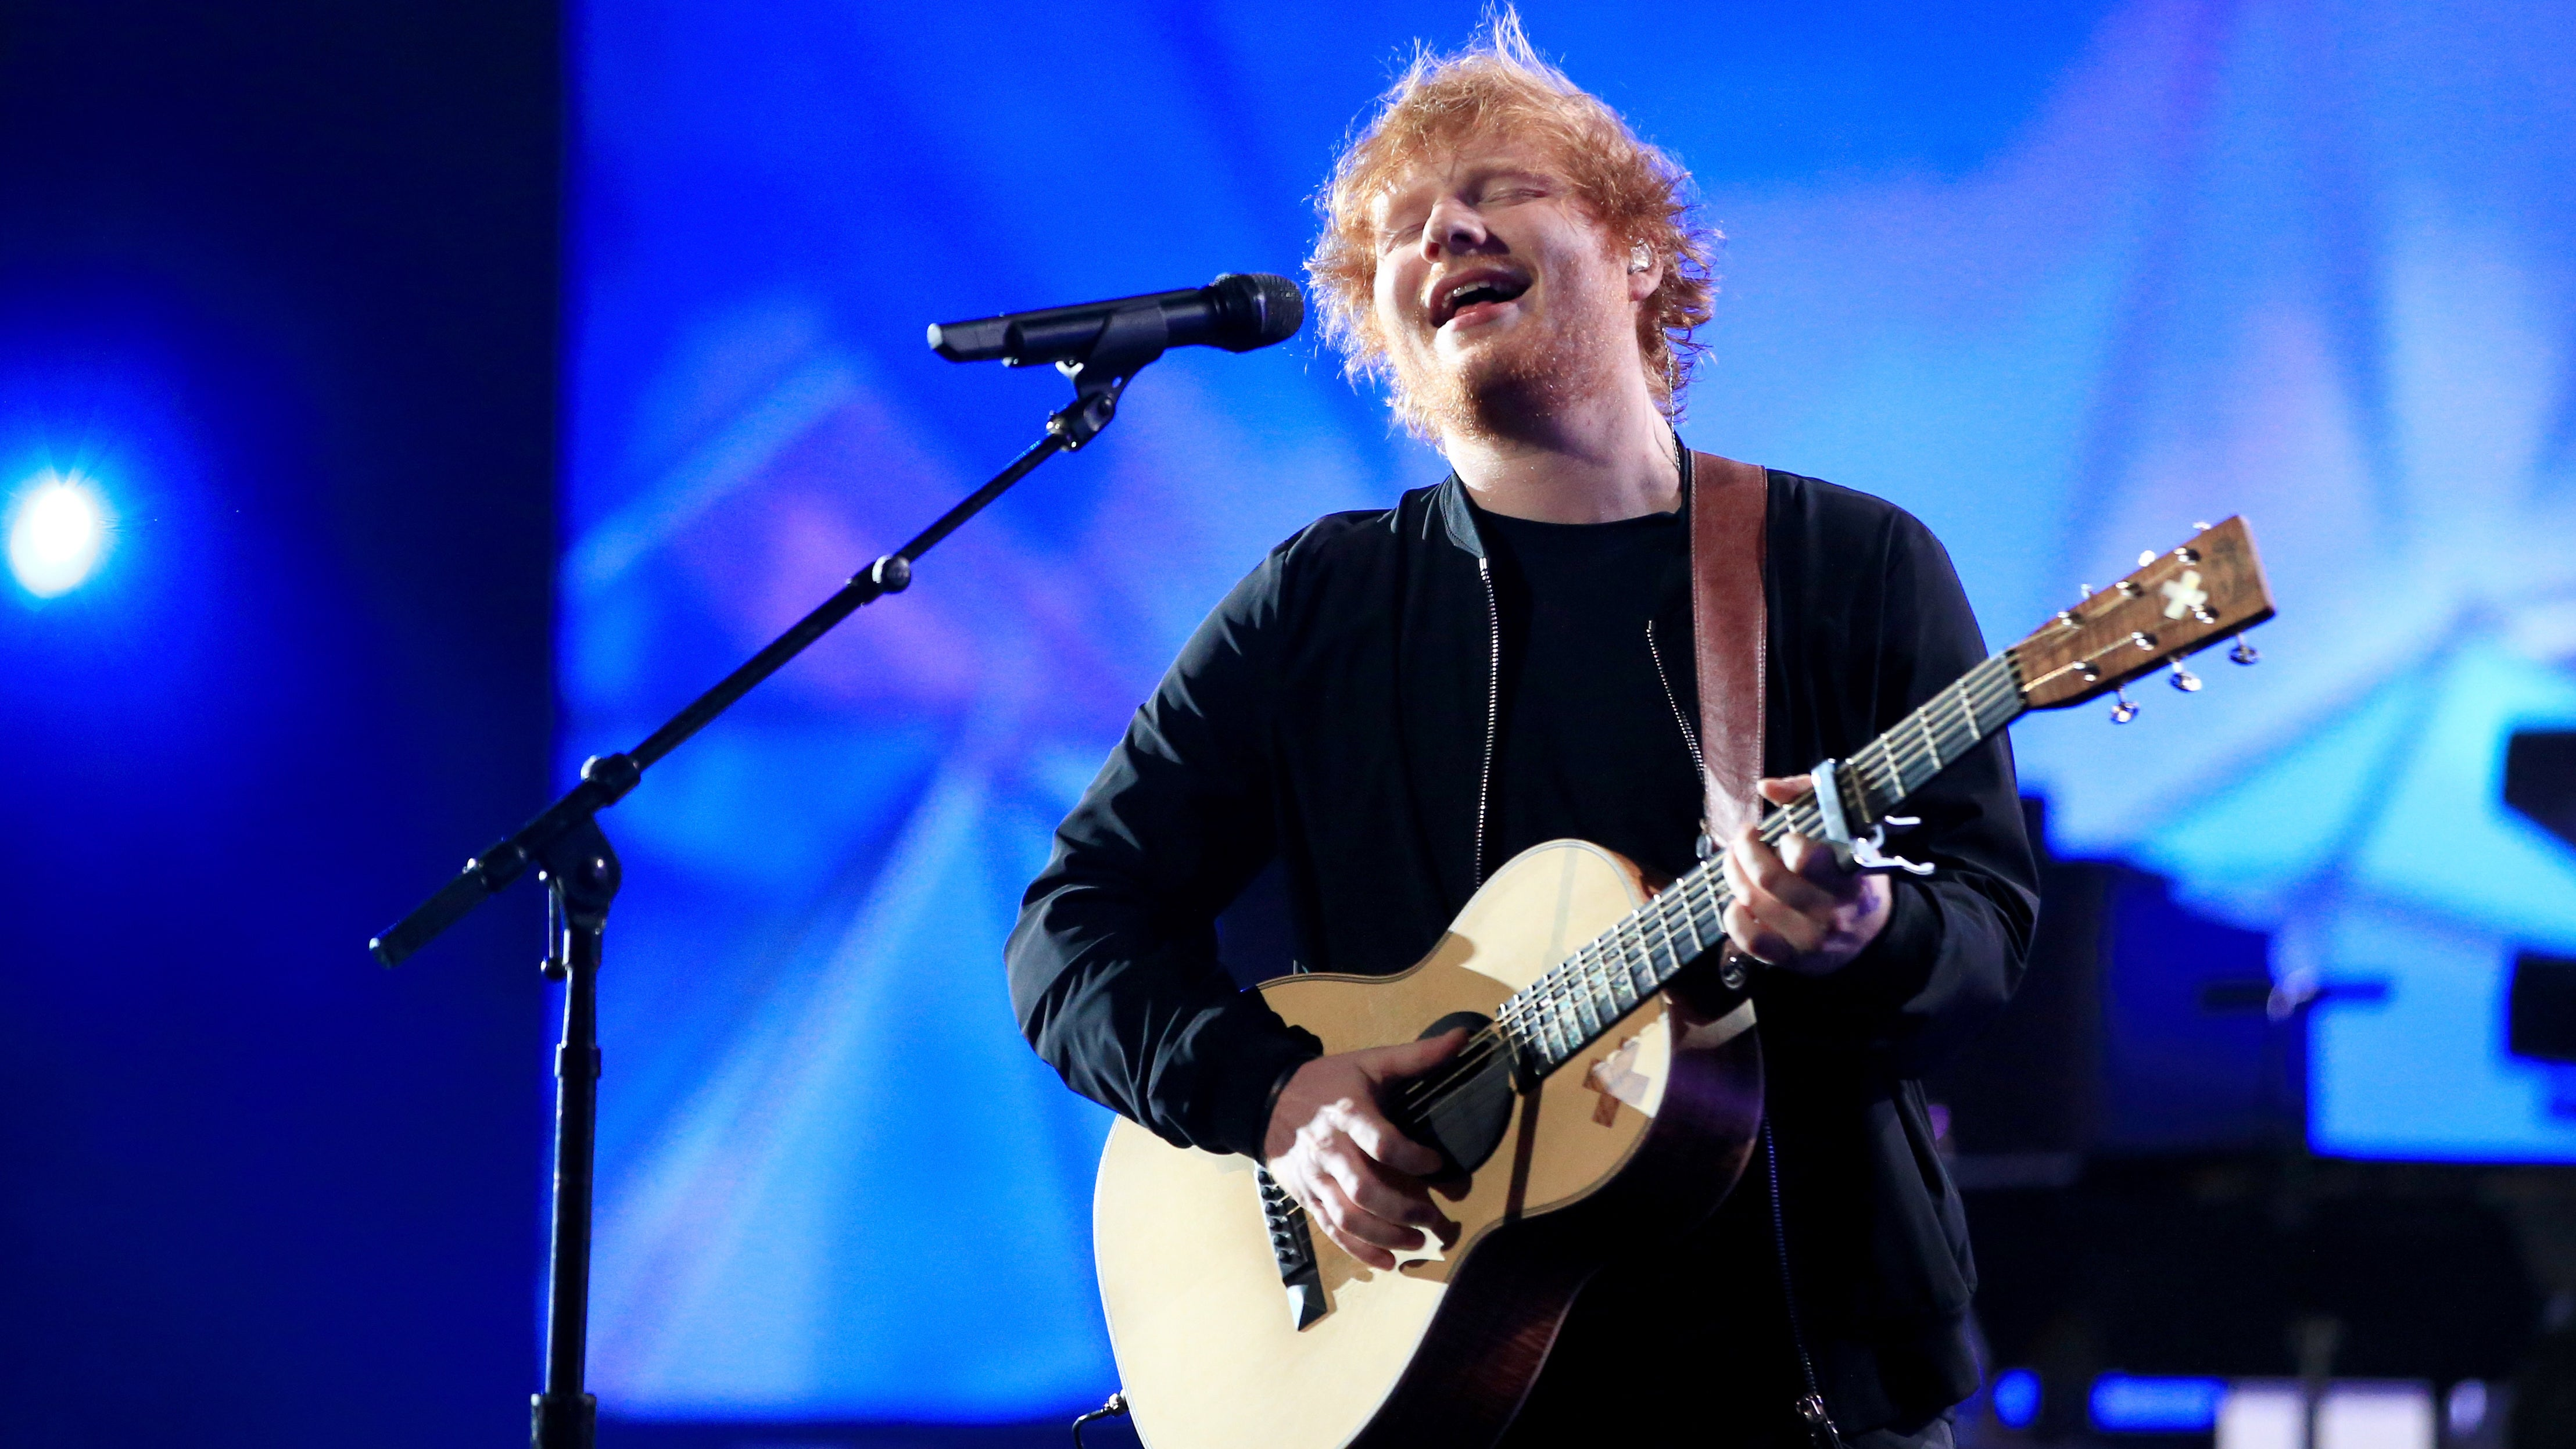 UK Hospital Fires Worker For Looking At Ed Sheeran's Health Records